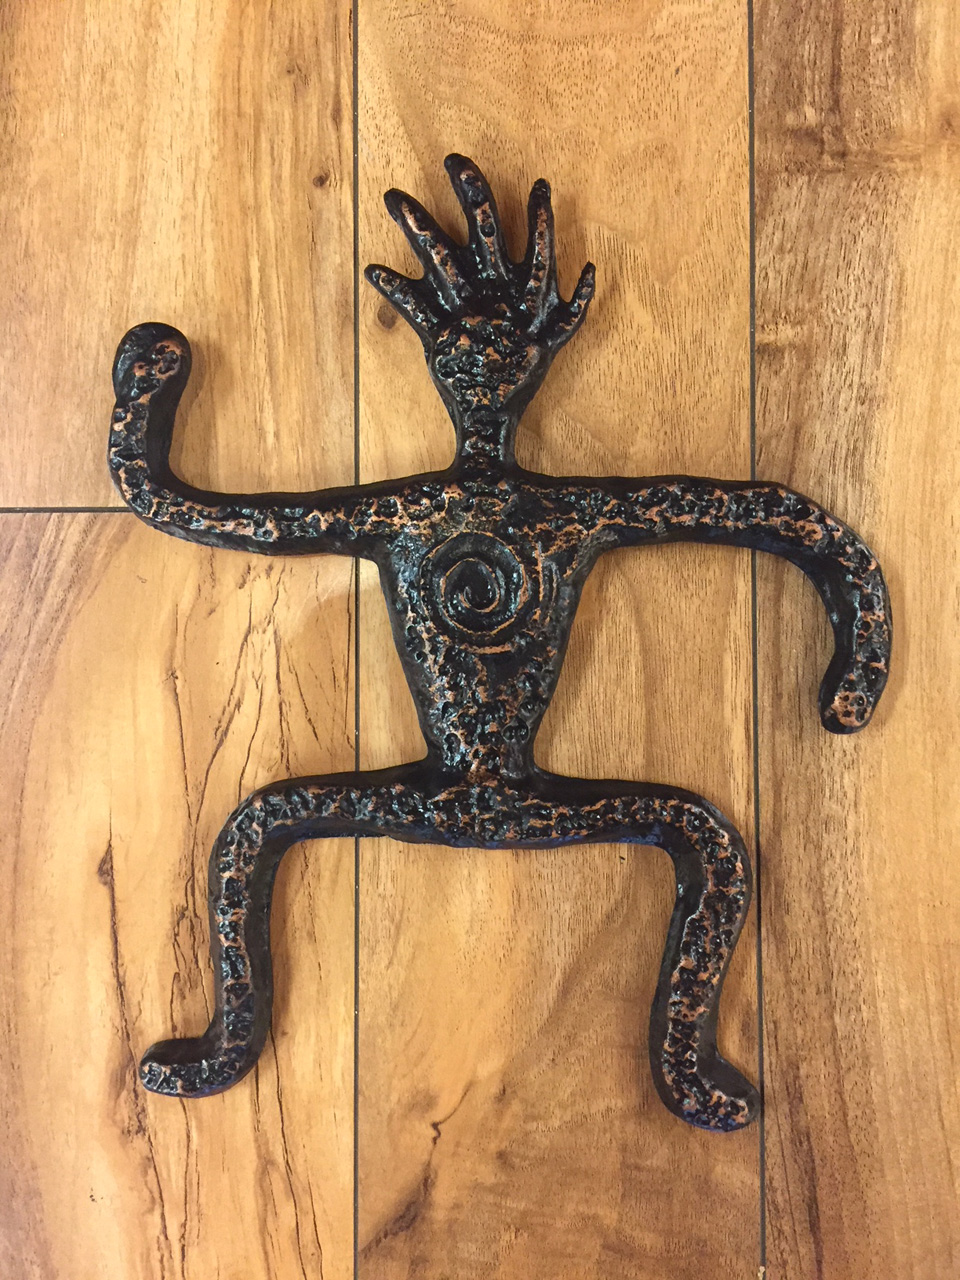 Crestman by Charlie Corda wall hanging sculpture